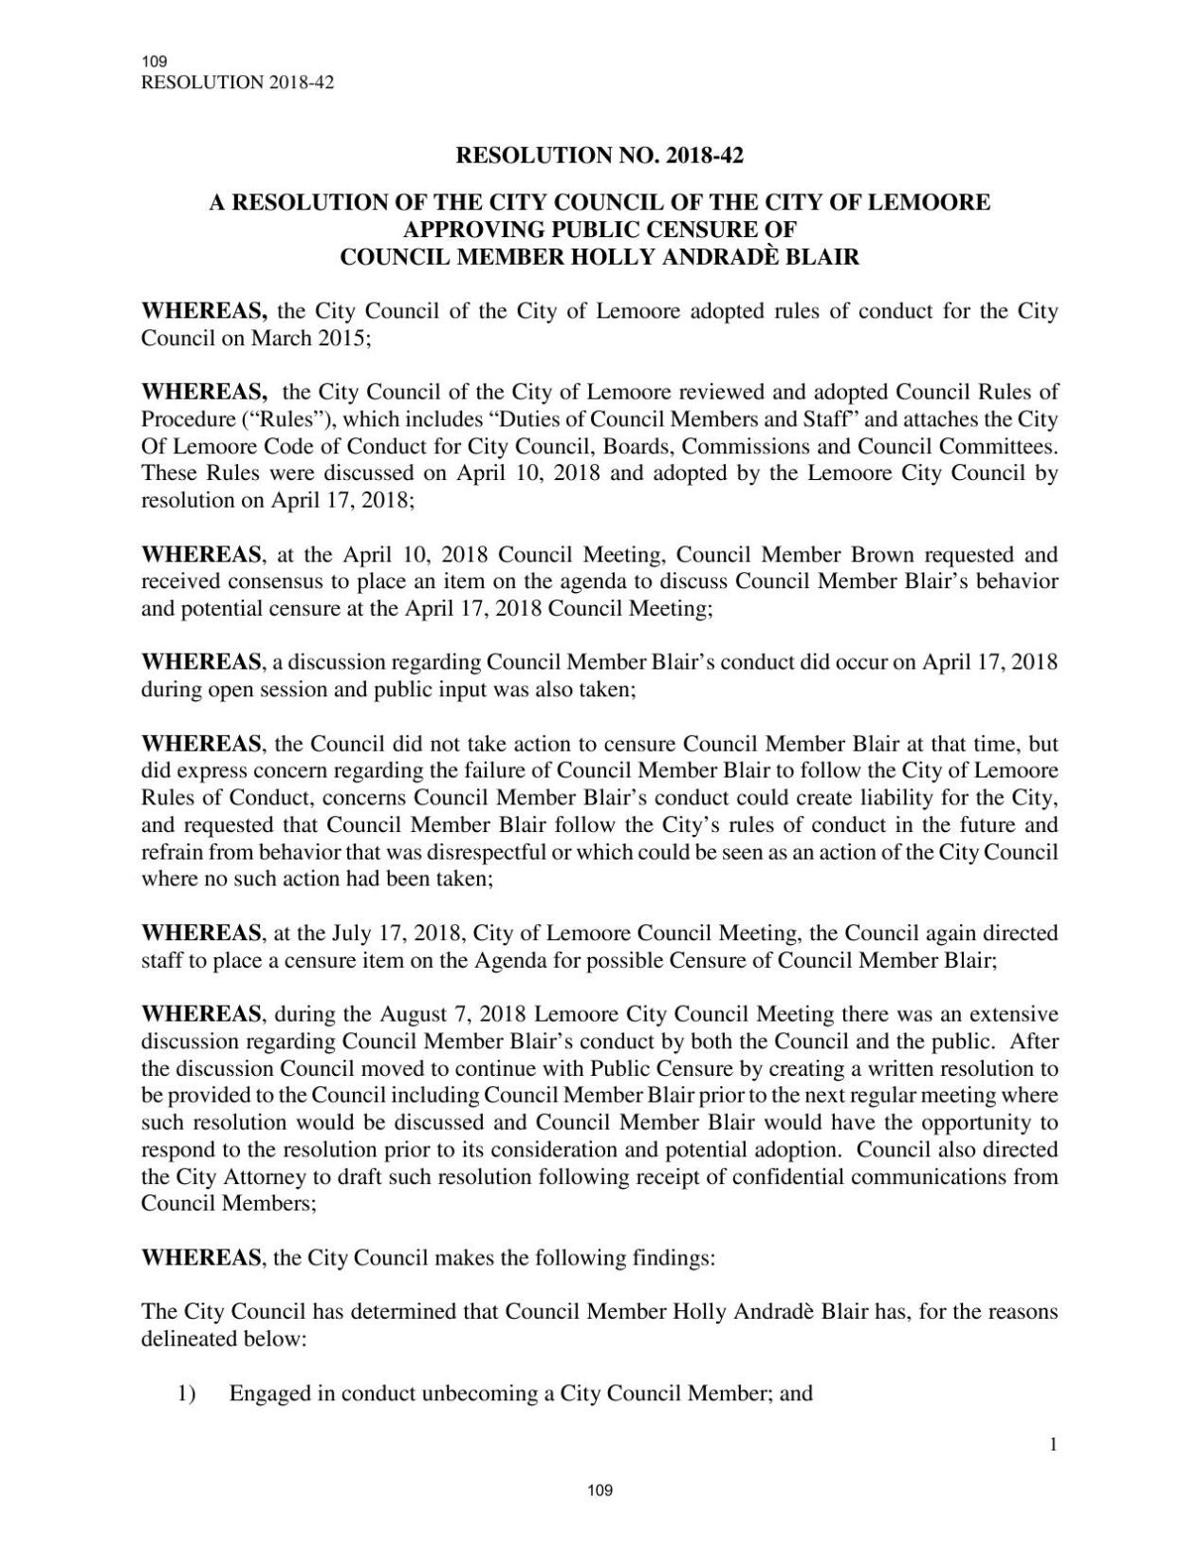 Public Censure of Council Member Holly Andrade Blair